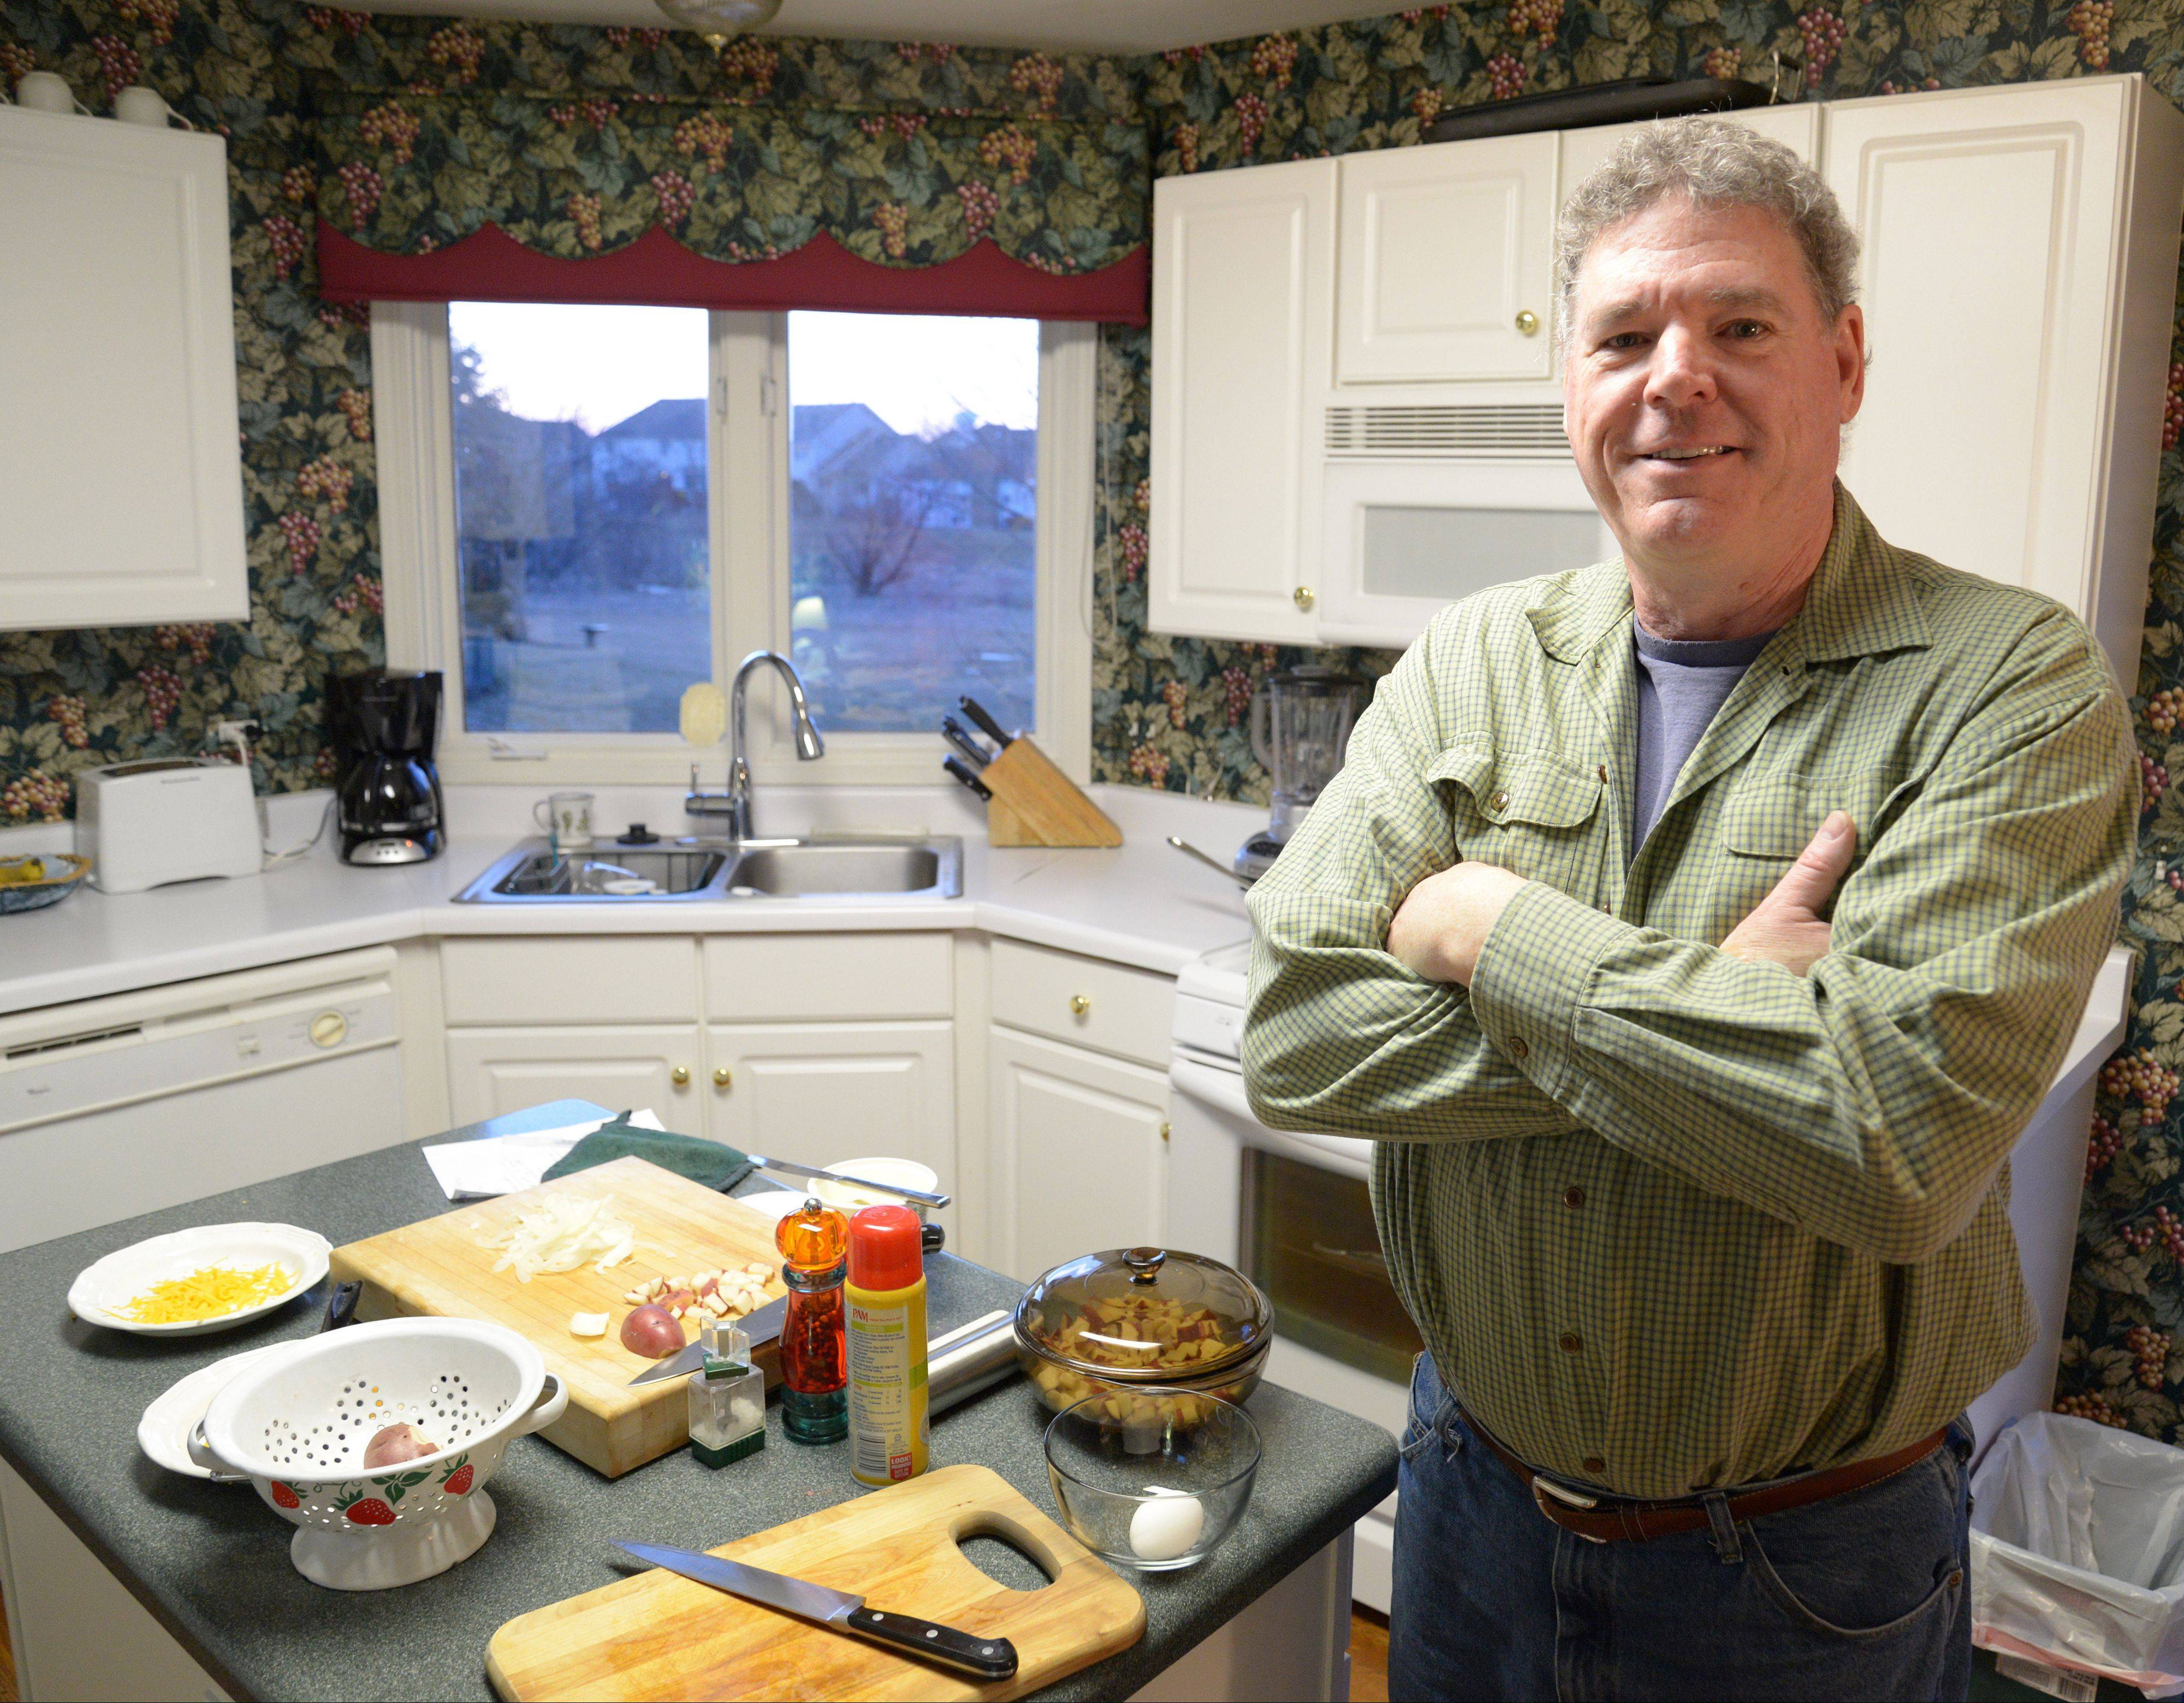 Tim Sullivan gets up early to make his signature breakfast skillet for his family.